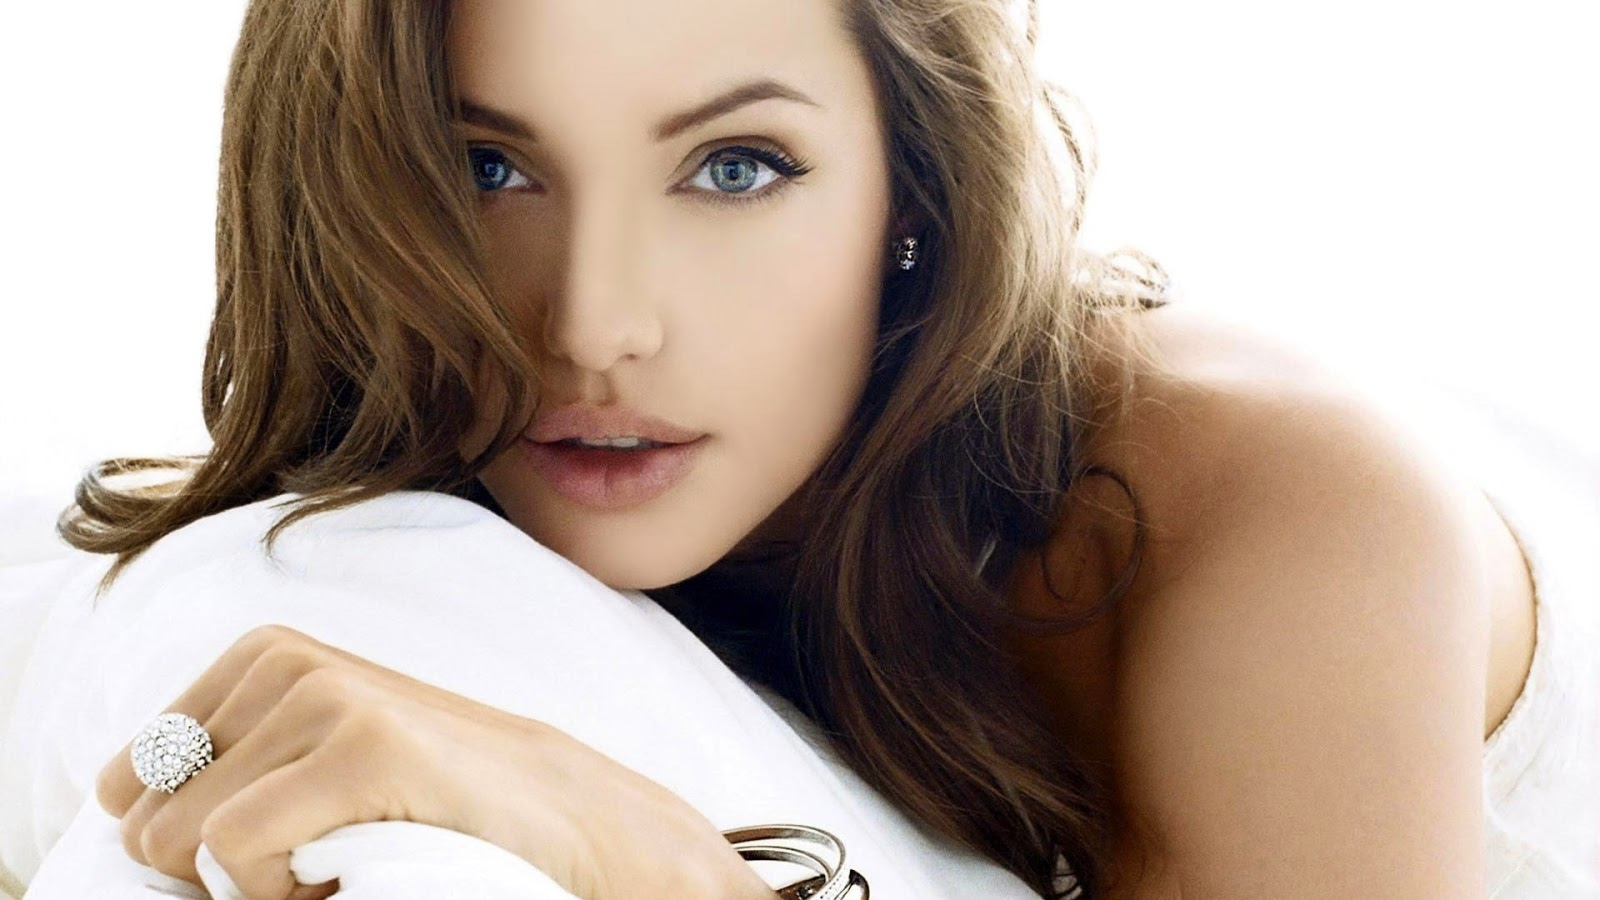 Hollywood Actress Angelina Jolie in bedroom Wallpaper